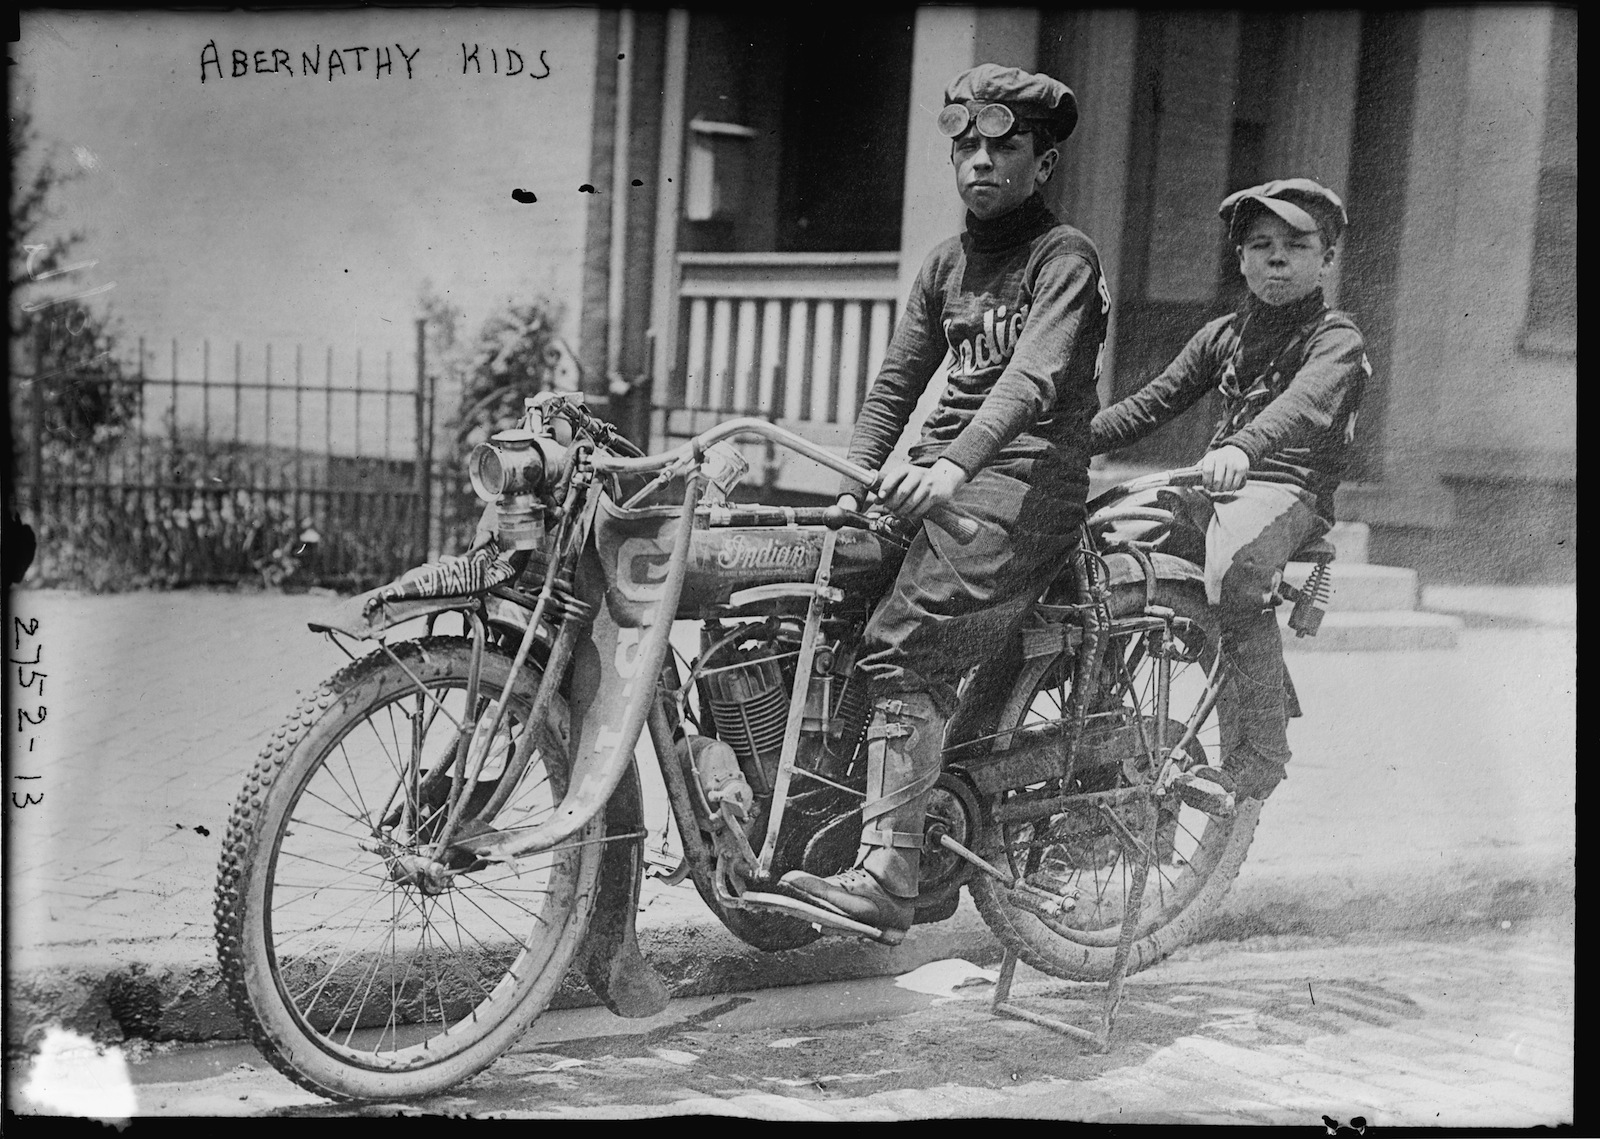 Abernathy Kids on Motorcycle Abernathy Kids on their Indian